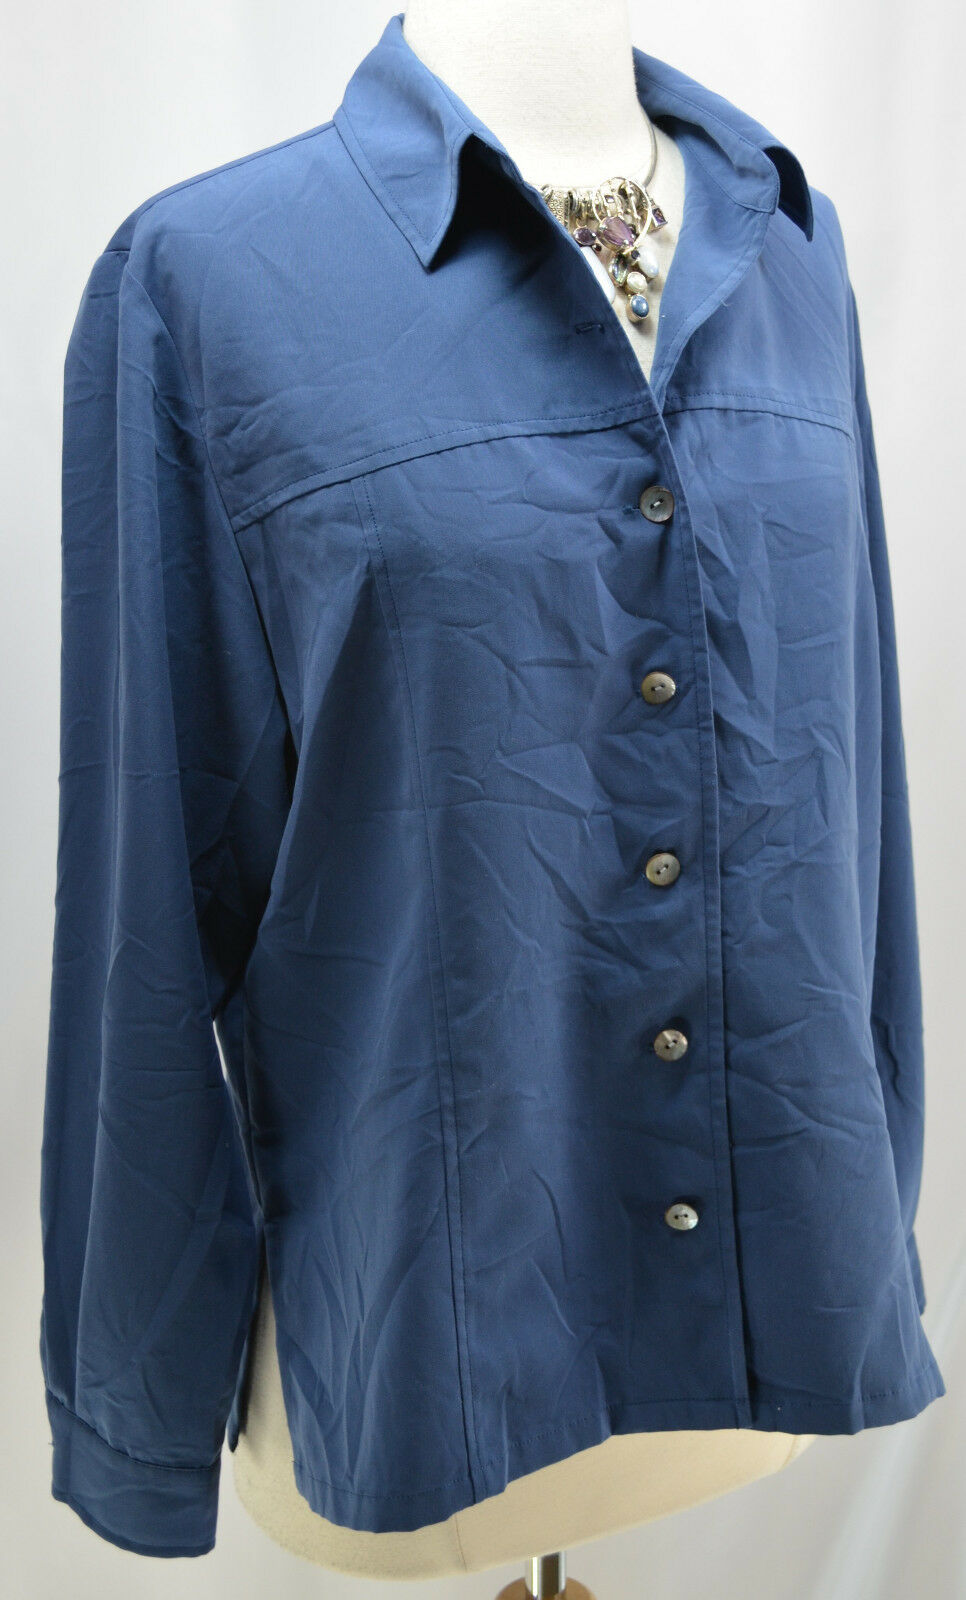 Coldwater Creek shirt button down blouse steel bluee top modal Size M long sleeve